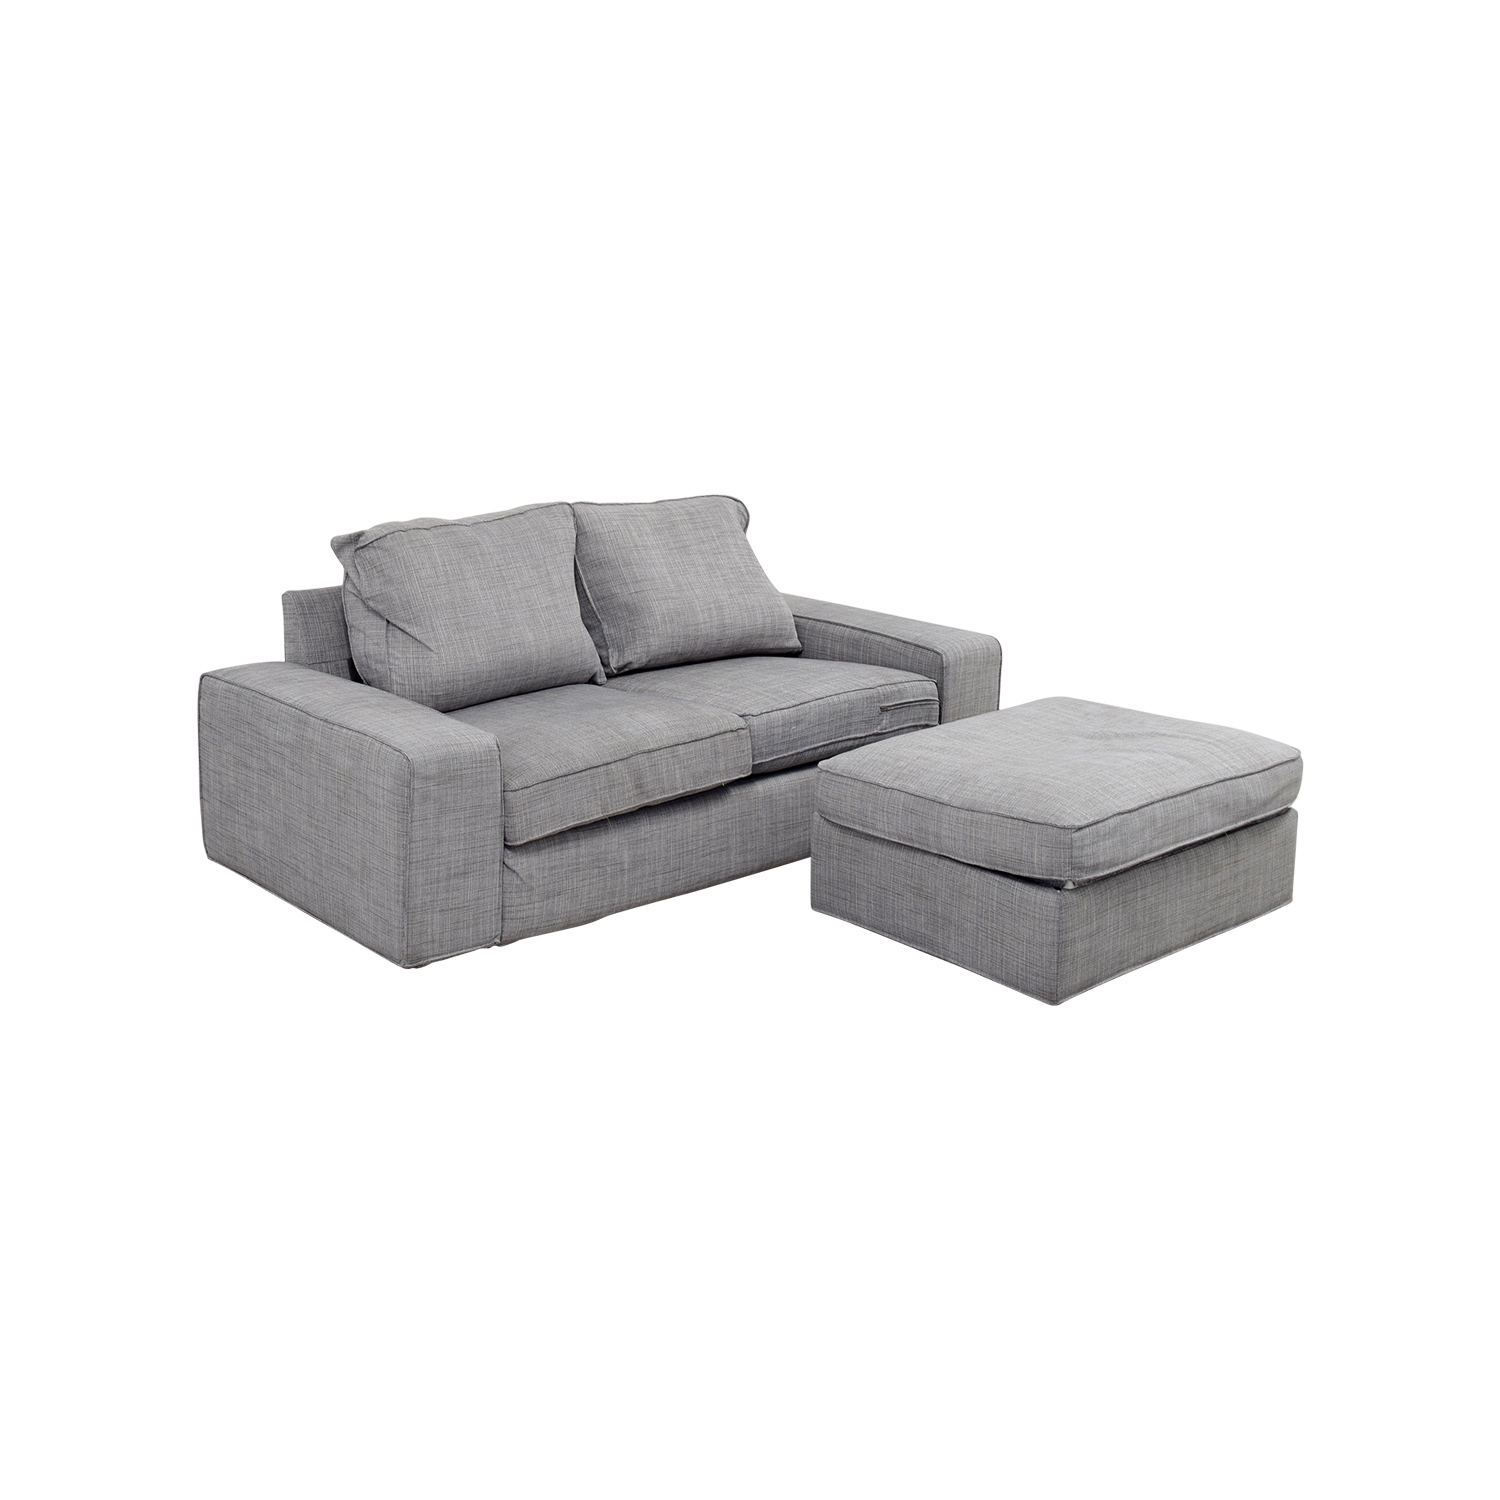 Sofa mit ottomane und beautiful elegant couch mit for Schlafsofa second hand